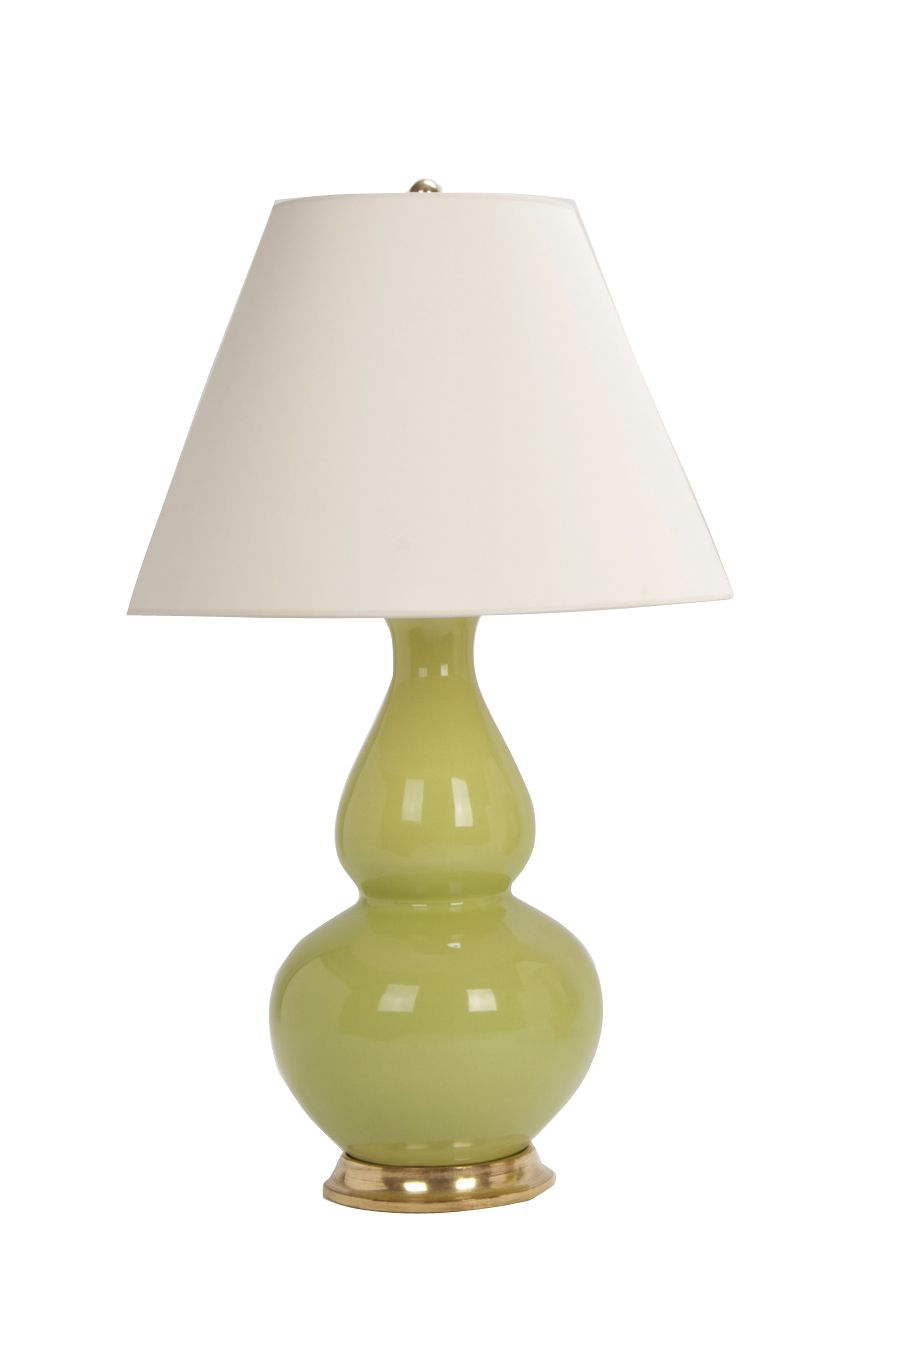 "<p>Dare we call them ... voluptuous? High-gloss curves have made these a designer go-to. (<a href=""http://shop.christopherspitzmiller.com/products/single-aurora-lamp-in-apple-green"" target=""_blank""><em data-redactor-tag=""em"">shop.christopherspitzmiller.com</em></a><span class=""redactor-invisible-space"" data-verified=""redactor"" data-redactor-tag=""span"" data-redactor-class=""redactor-invisible-space"">)</span>.</p>"